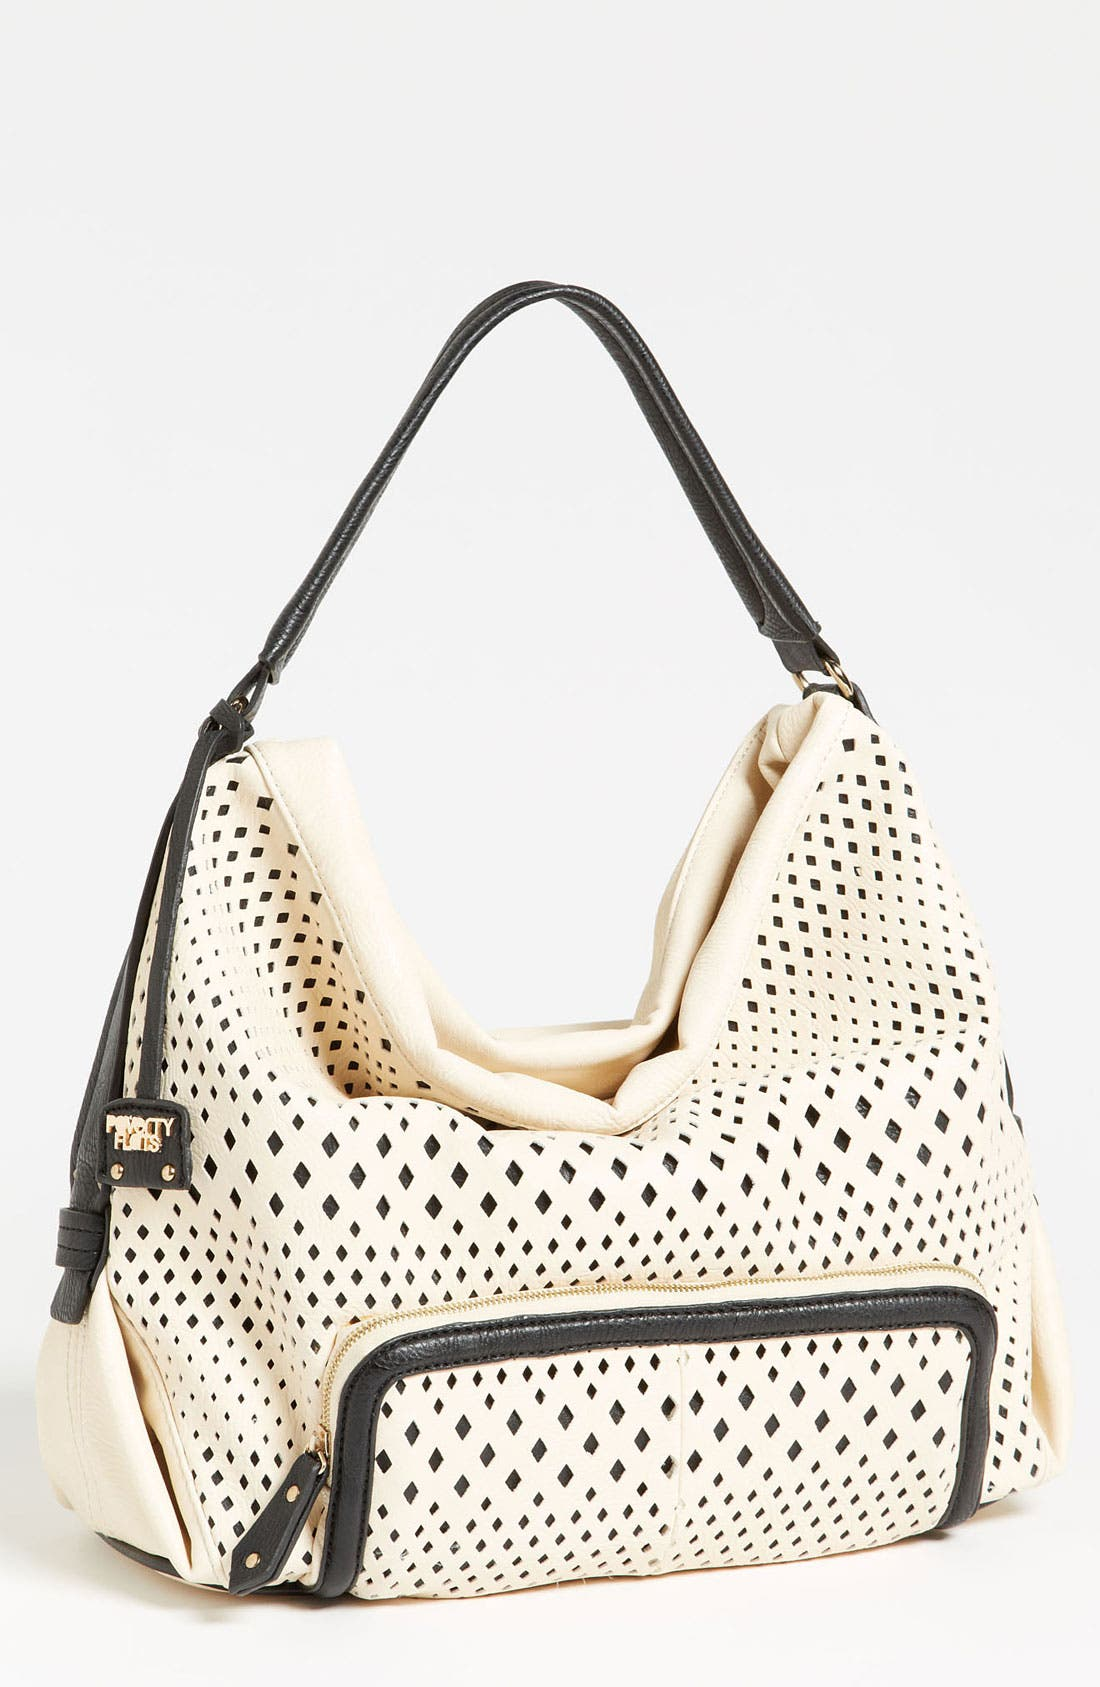 POVERTY FLATS BY RIAN Perforated Faux Leather Shoulder Bag, Main, color, 001